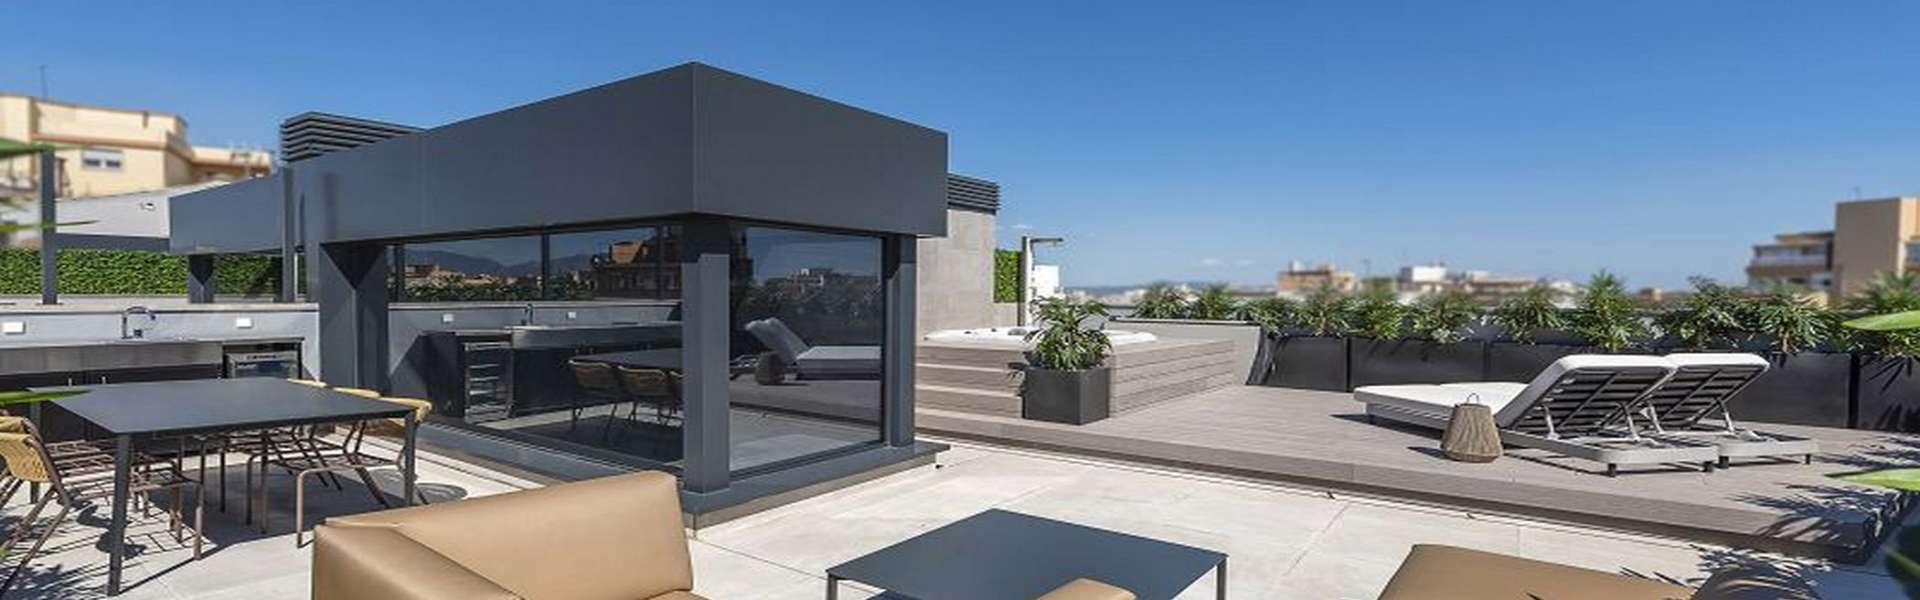 Palma/center - Penthouse with style